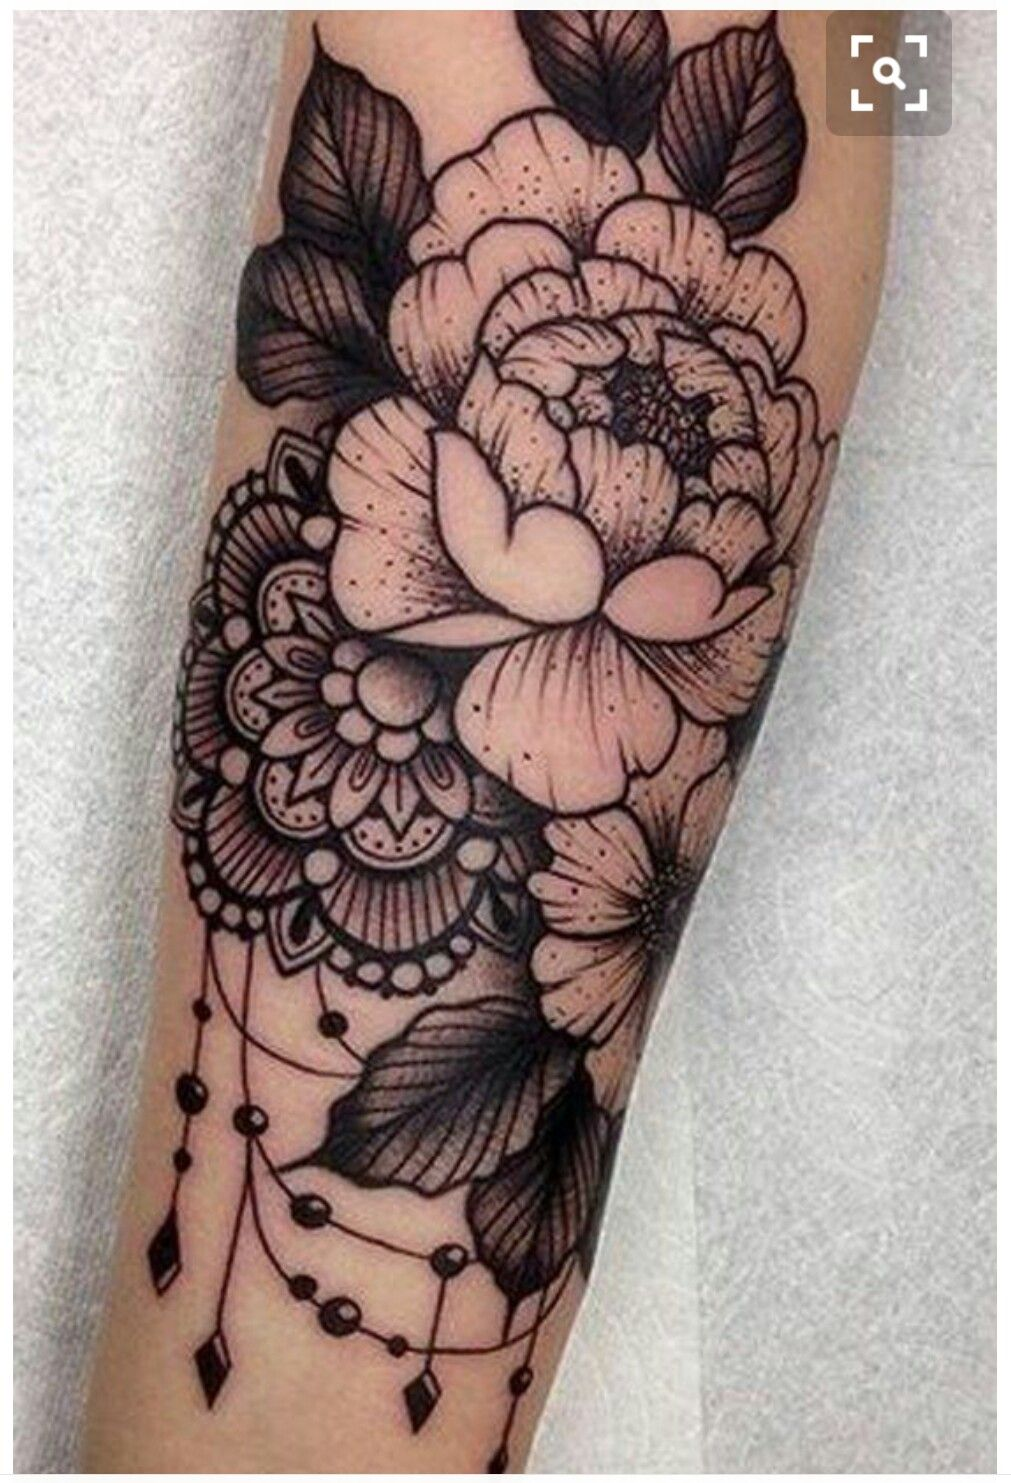 Pin by cecily comer on barbie bitches pinterest tattoo